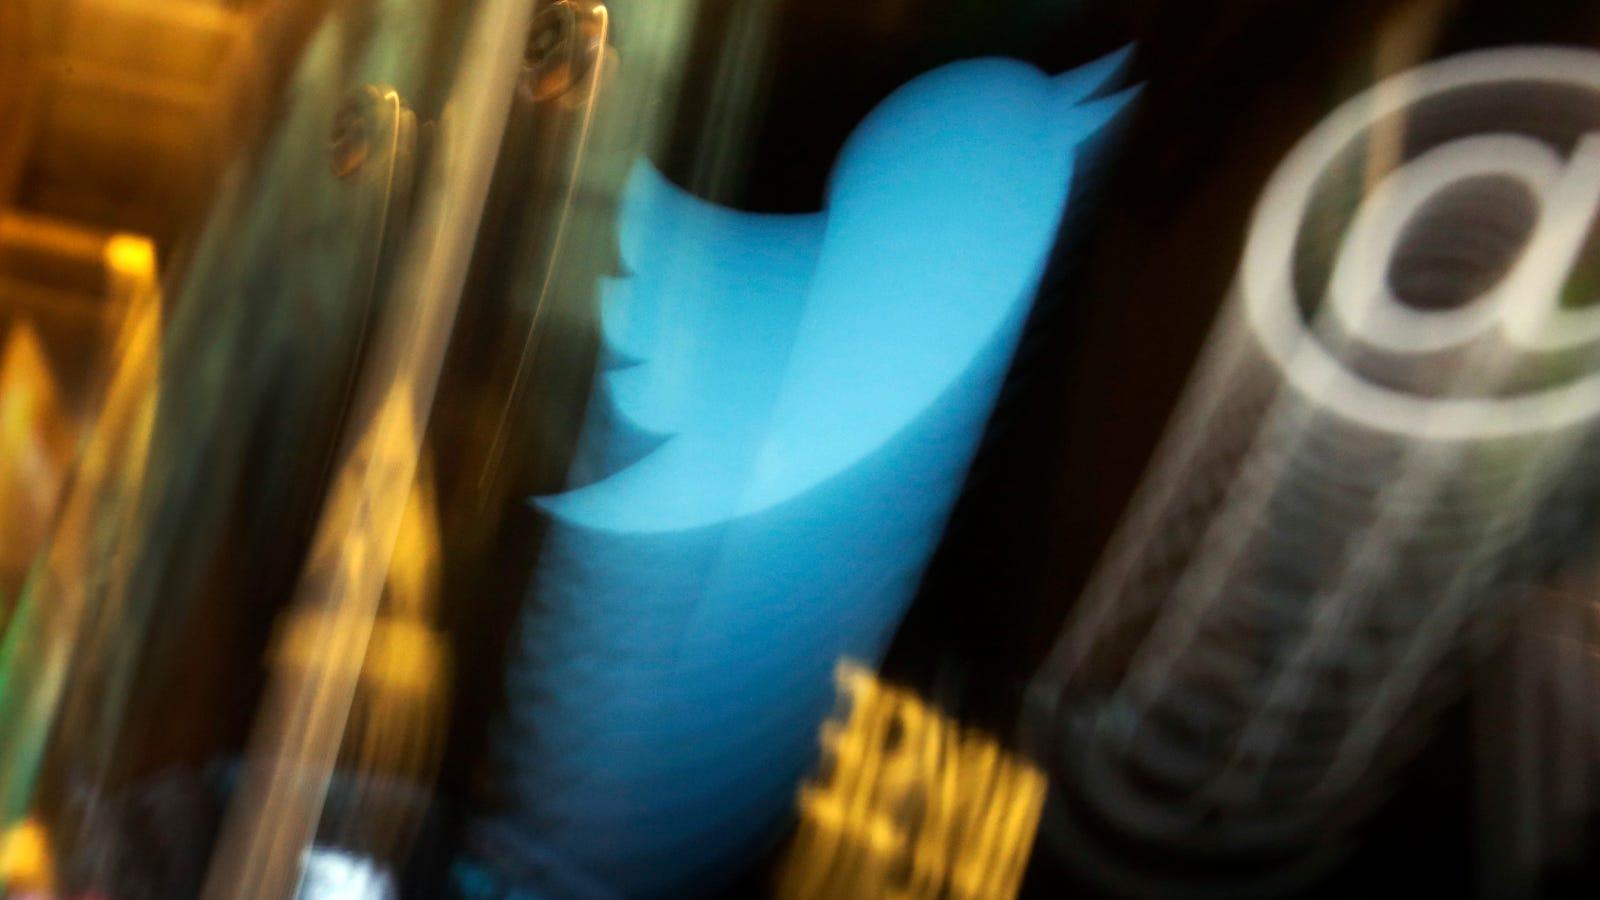 Twitter Alerts Nearly 680,000 Users They May Have Been Duped by Russian Accounts